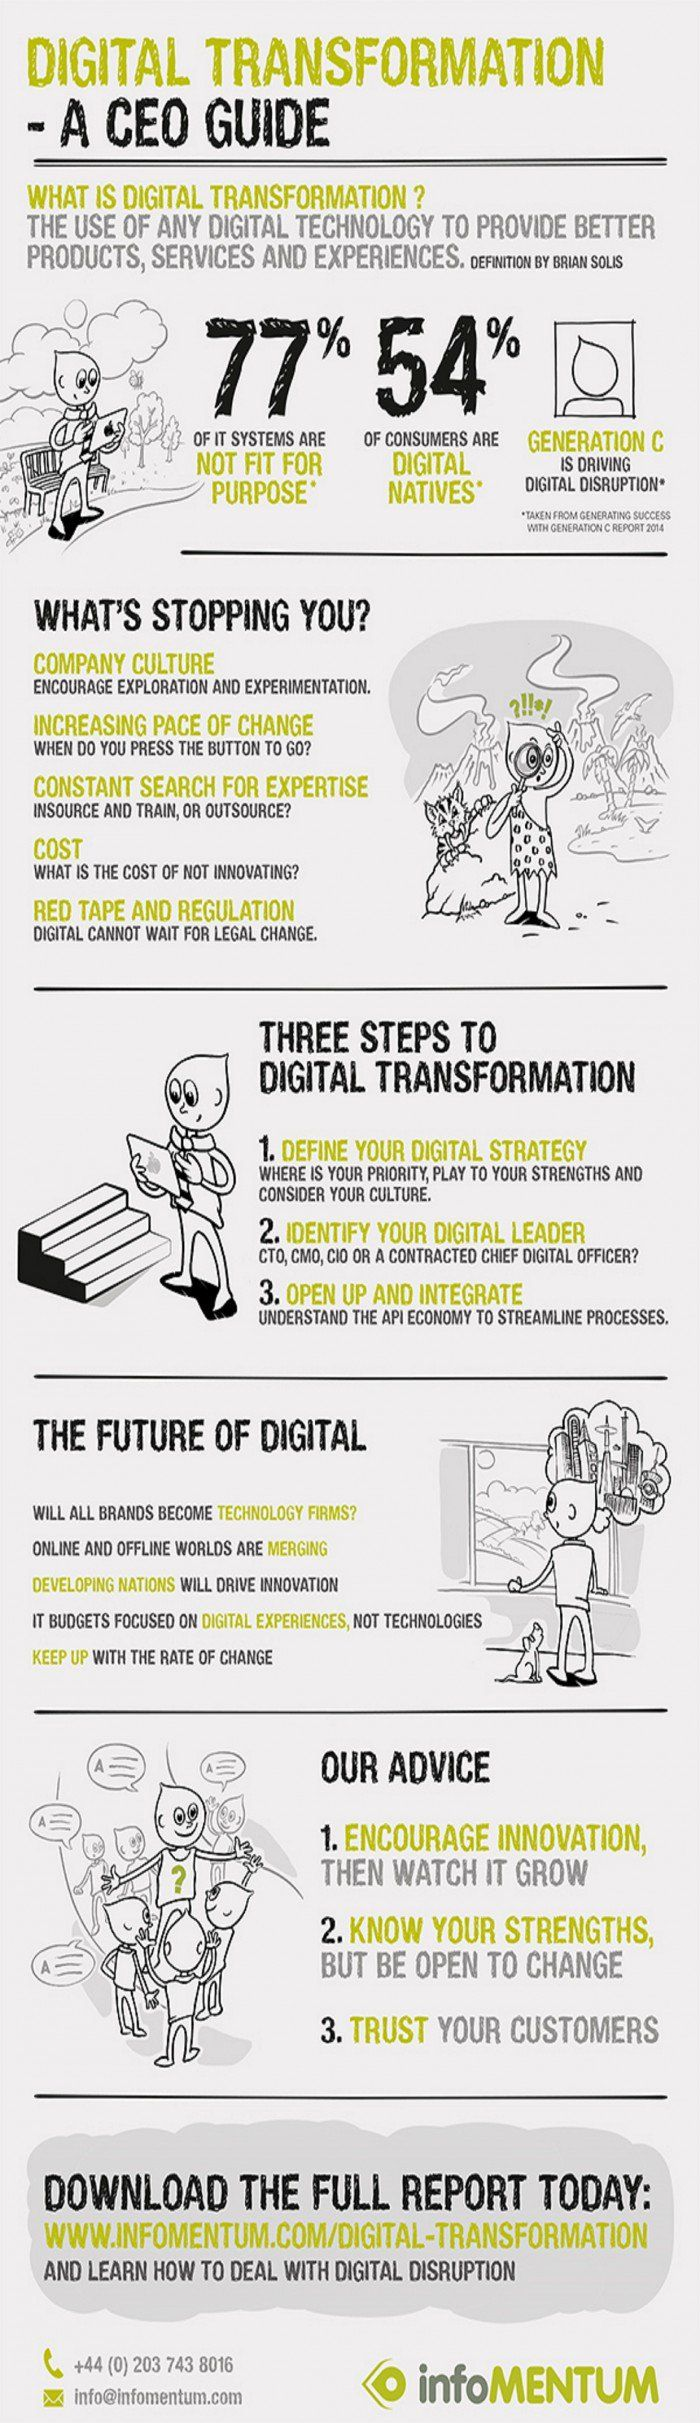 60 Best Digital Transformation Images On Pinterest